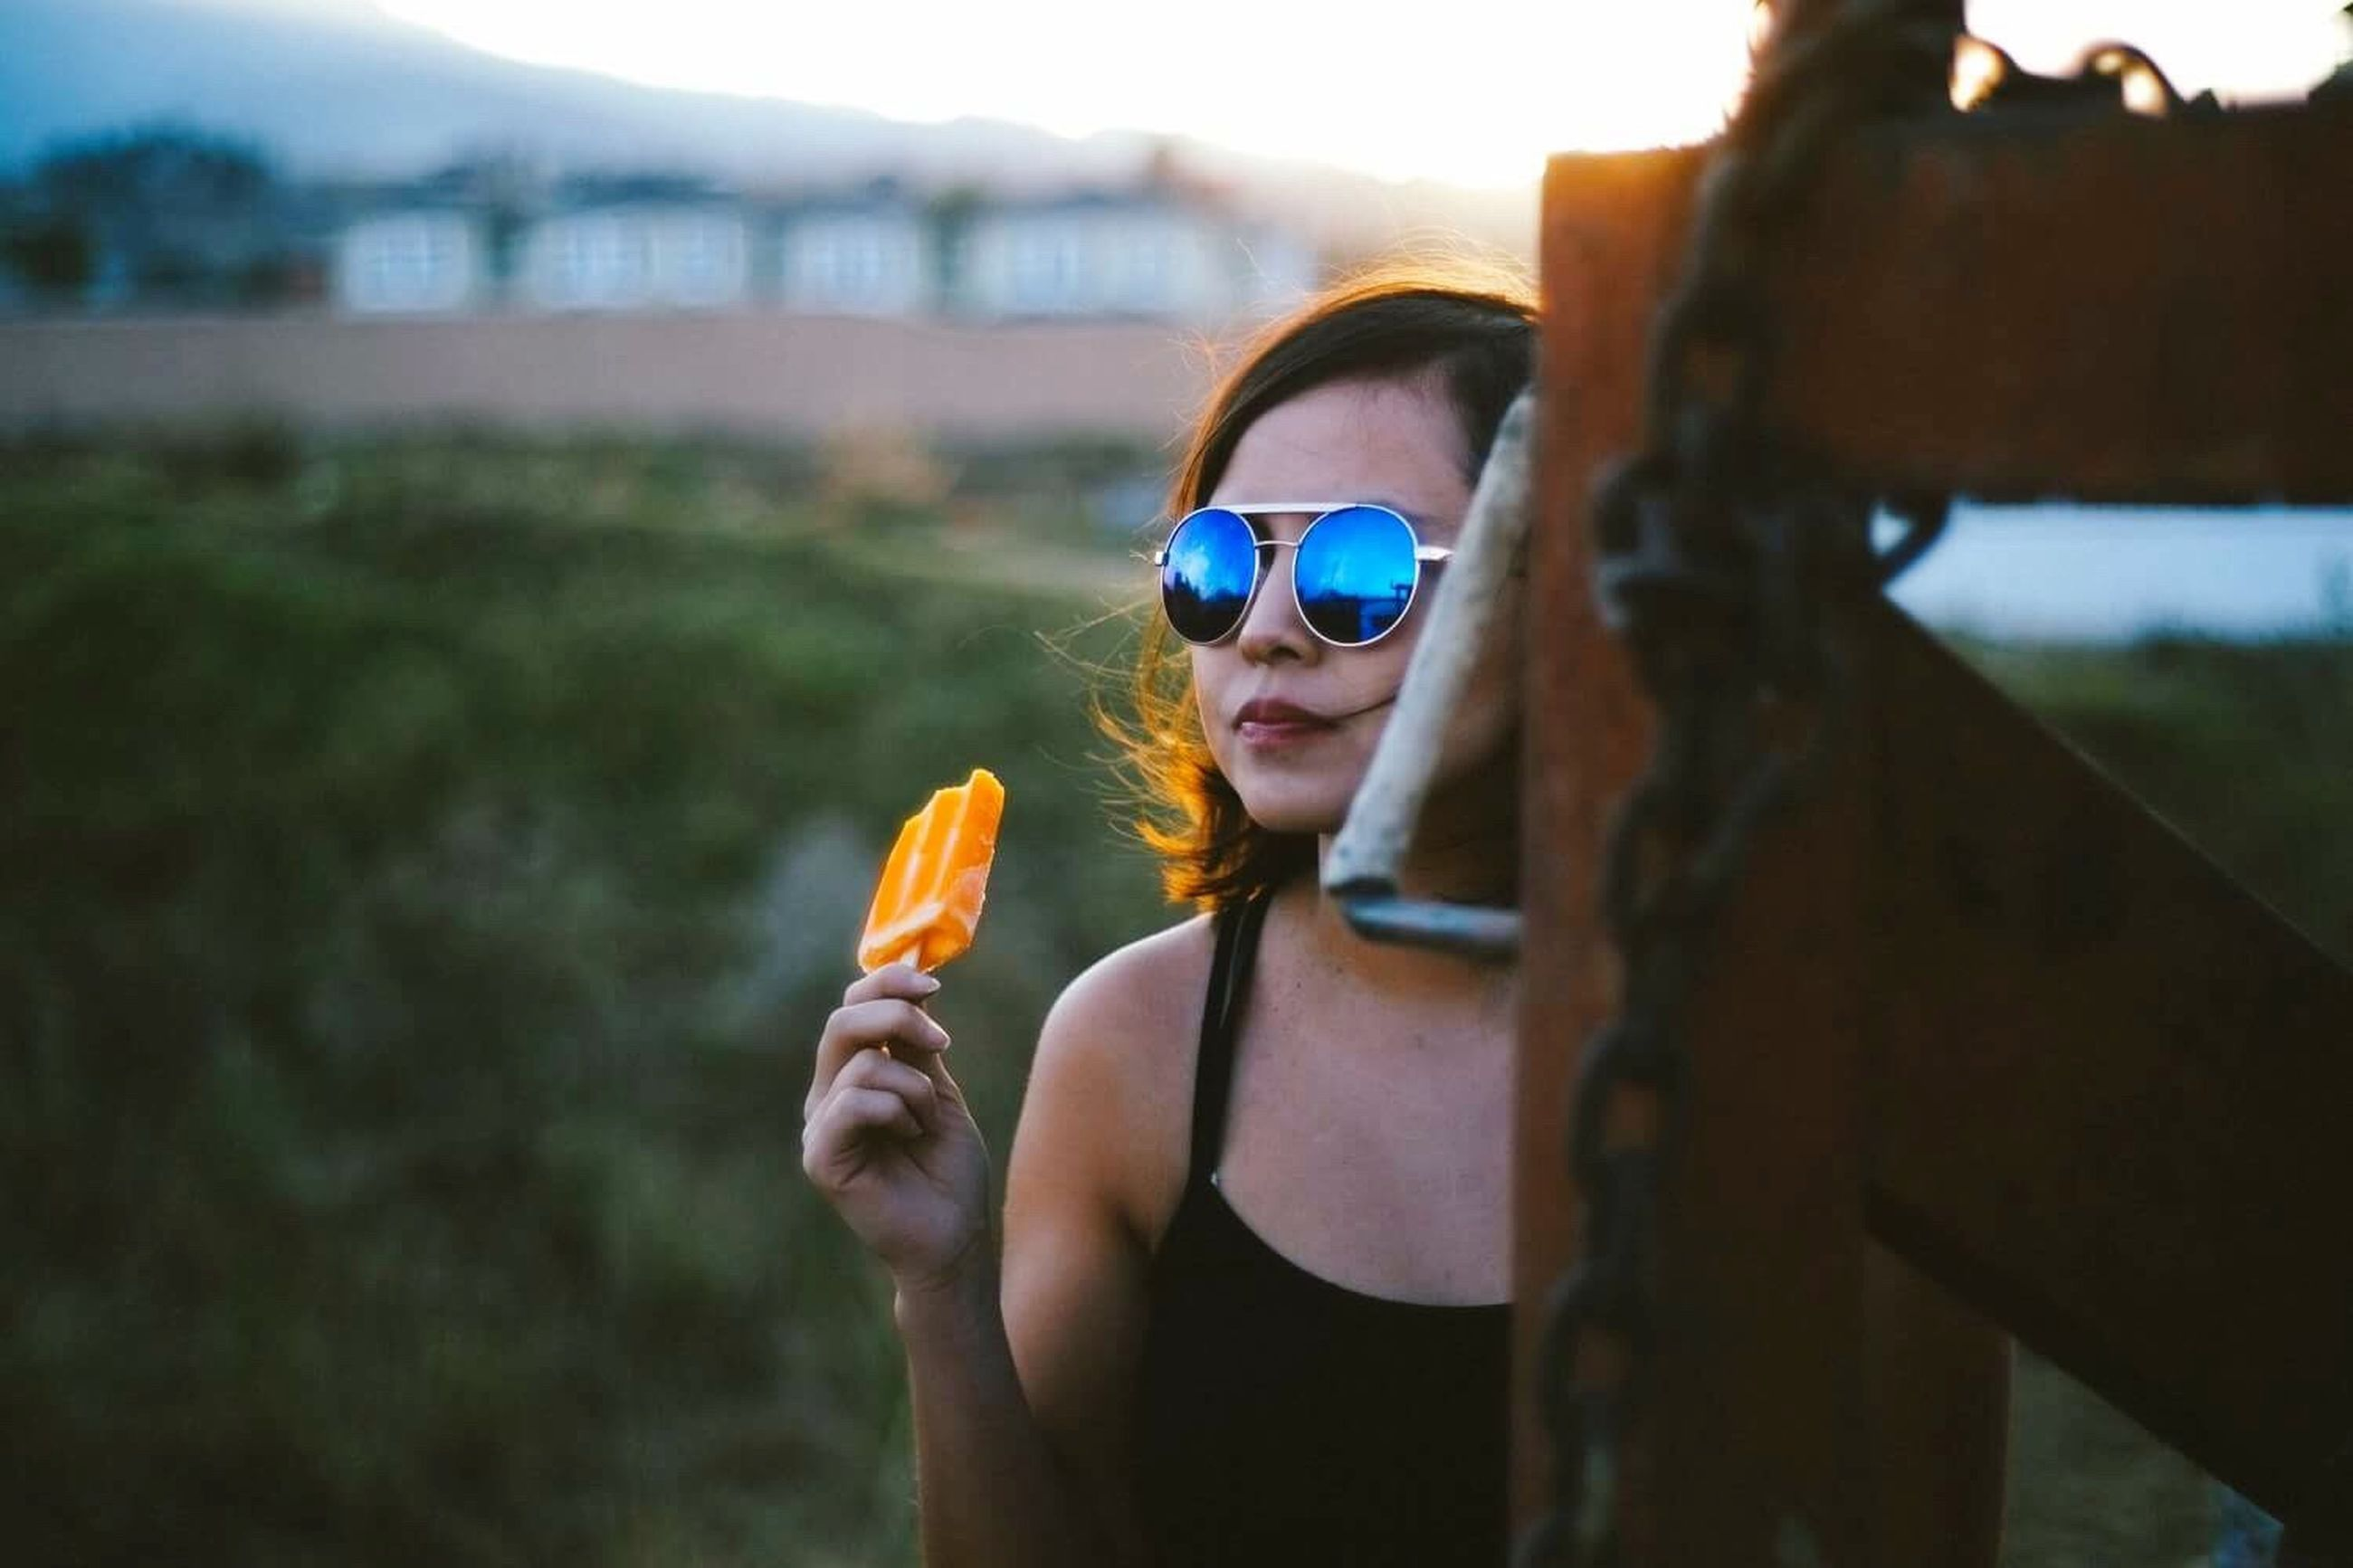 lifestyles, sunglasses, leisure activity, focus on foreground, portrait, headshot, sunlight, close-up, casual clothing, day, outdoors, sky, selective focus, nature